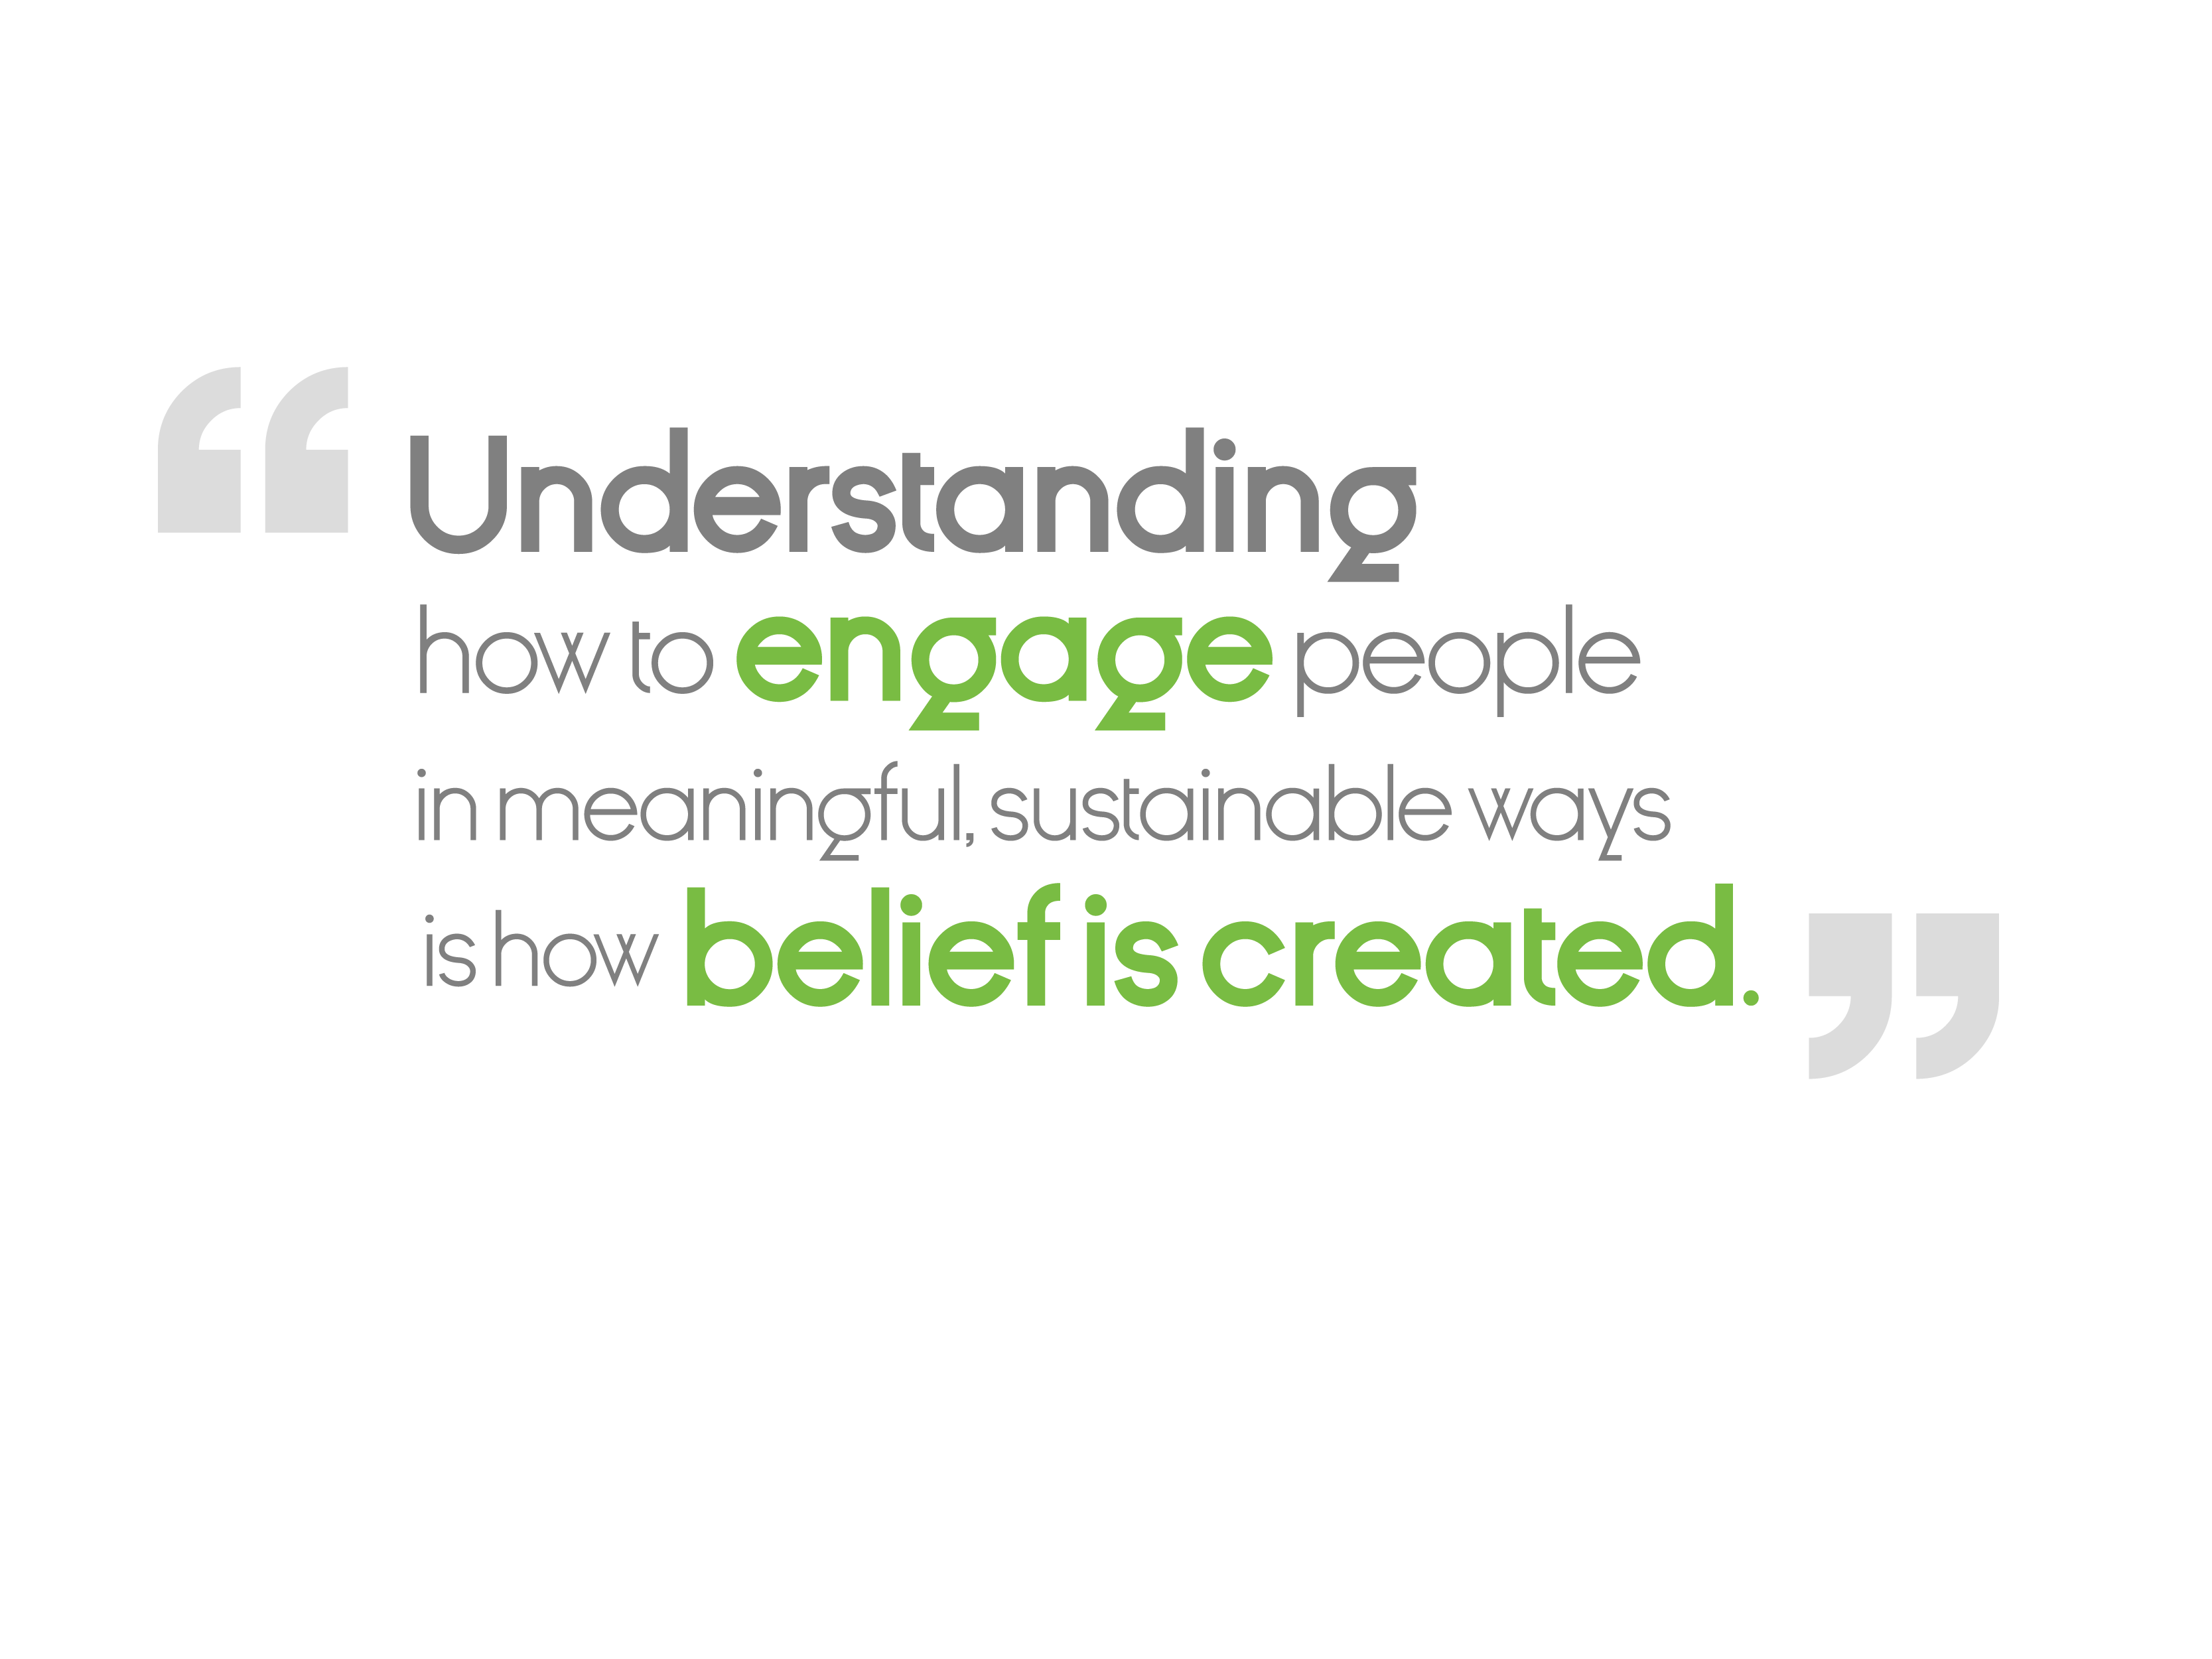 Understanding how to engage people in meaningful, sustainable ways is how belief is created